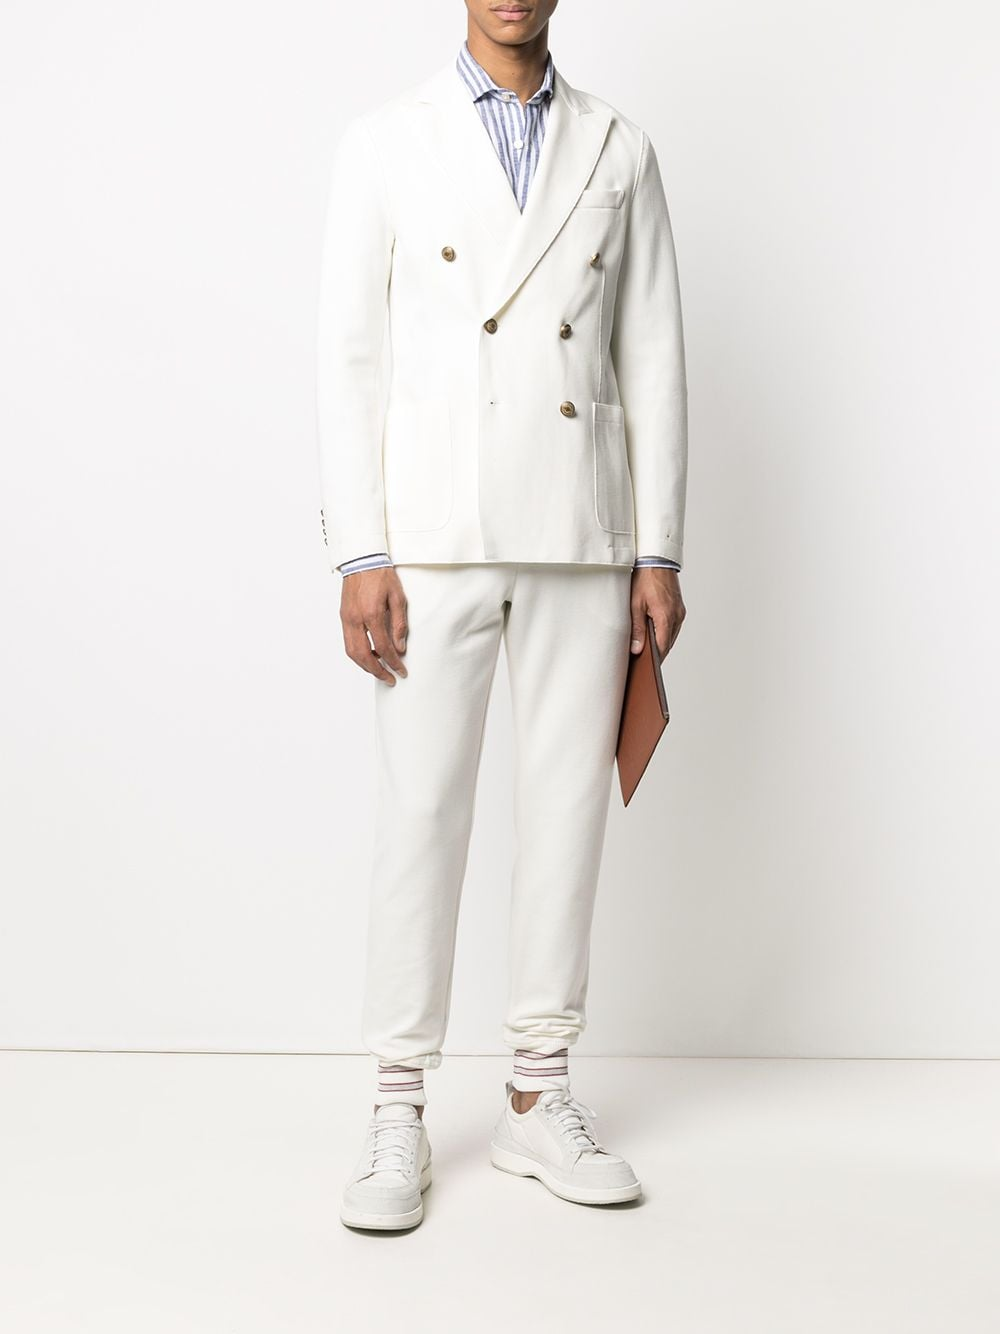 White double-breasted blazer featuring two front patch pockets ELEVENTY |  | C70GIAA02-JAC2500101